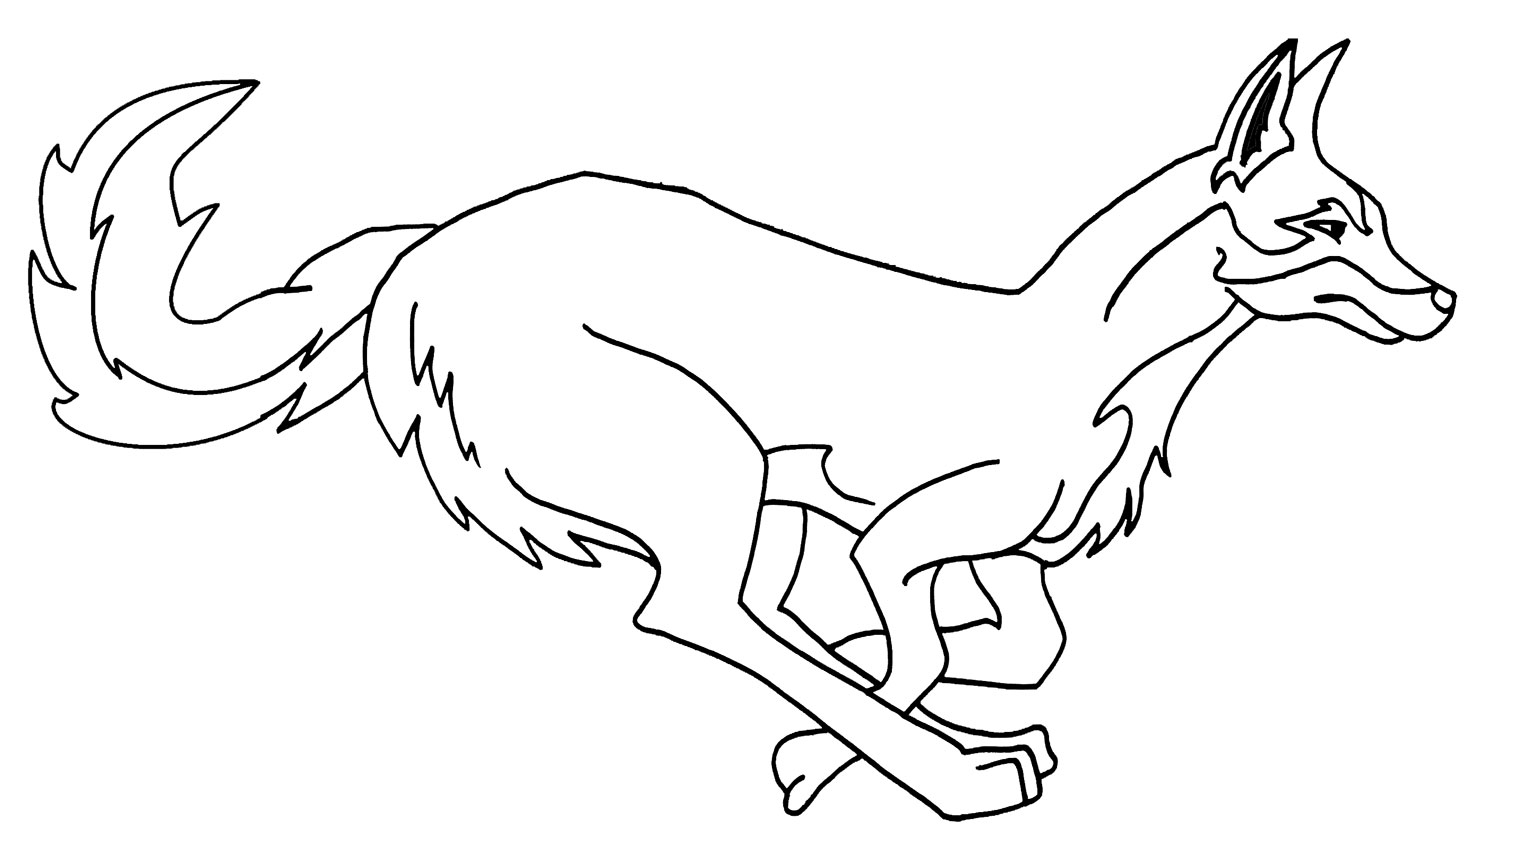 coyote coloring page free printable coyote coloring pages for kids coloring page coyote